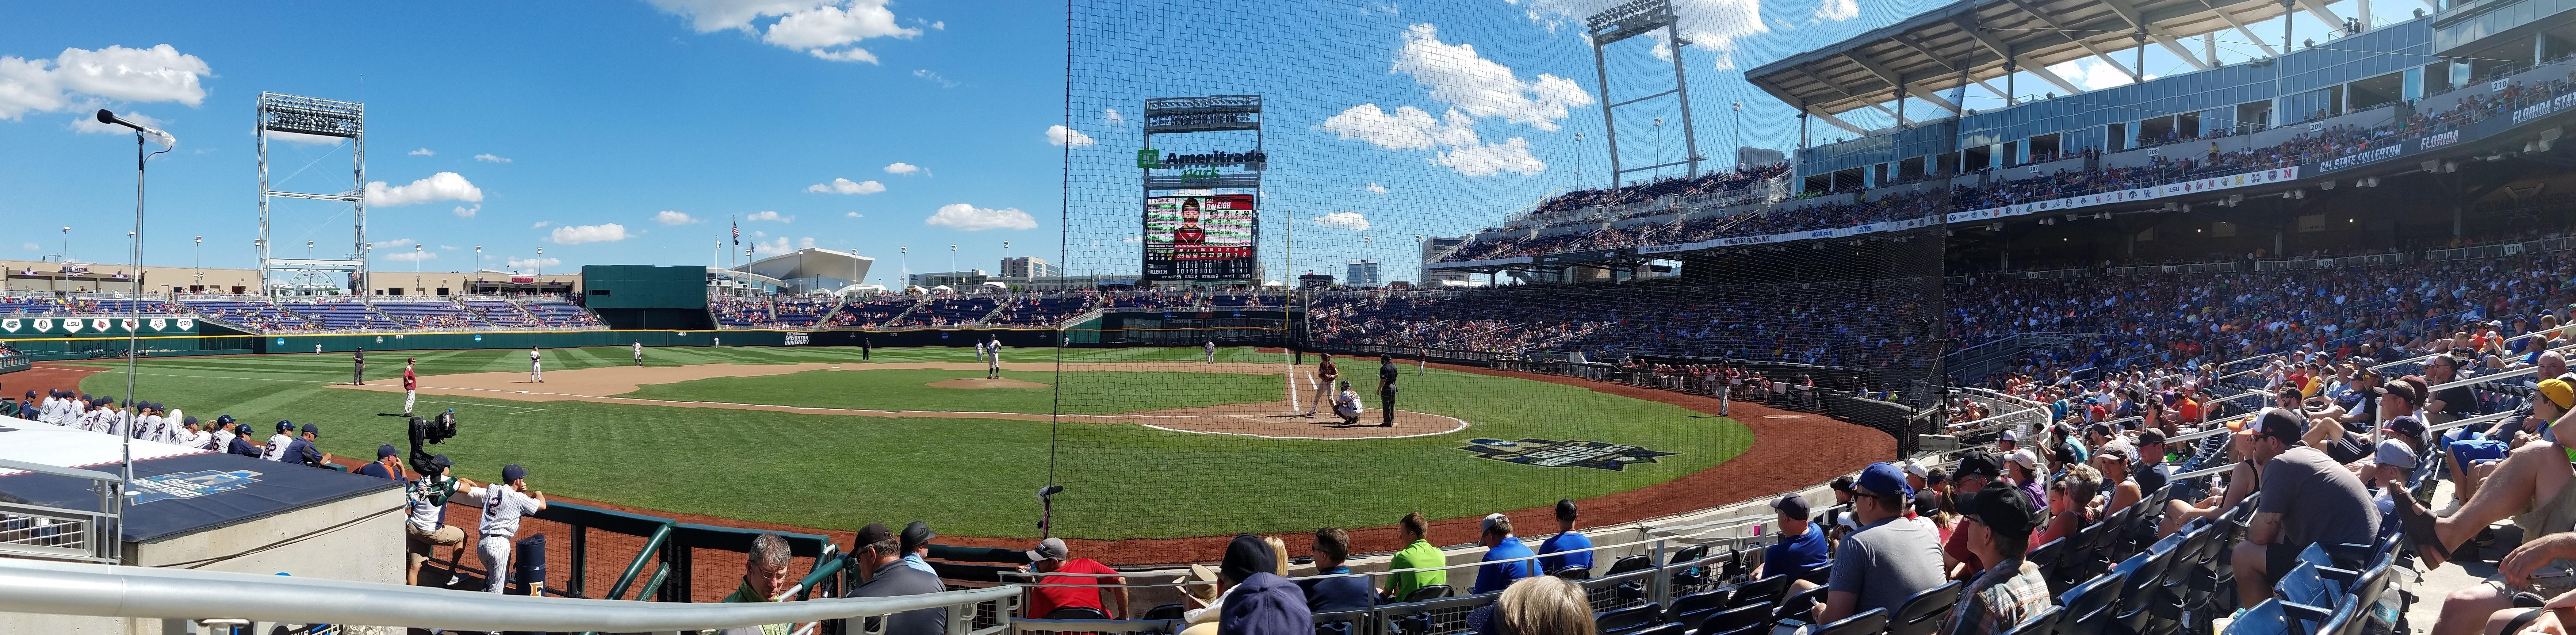 TD Ameritrade Park Section 114 Row 8 Seat 14